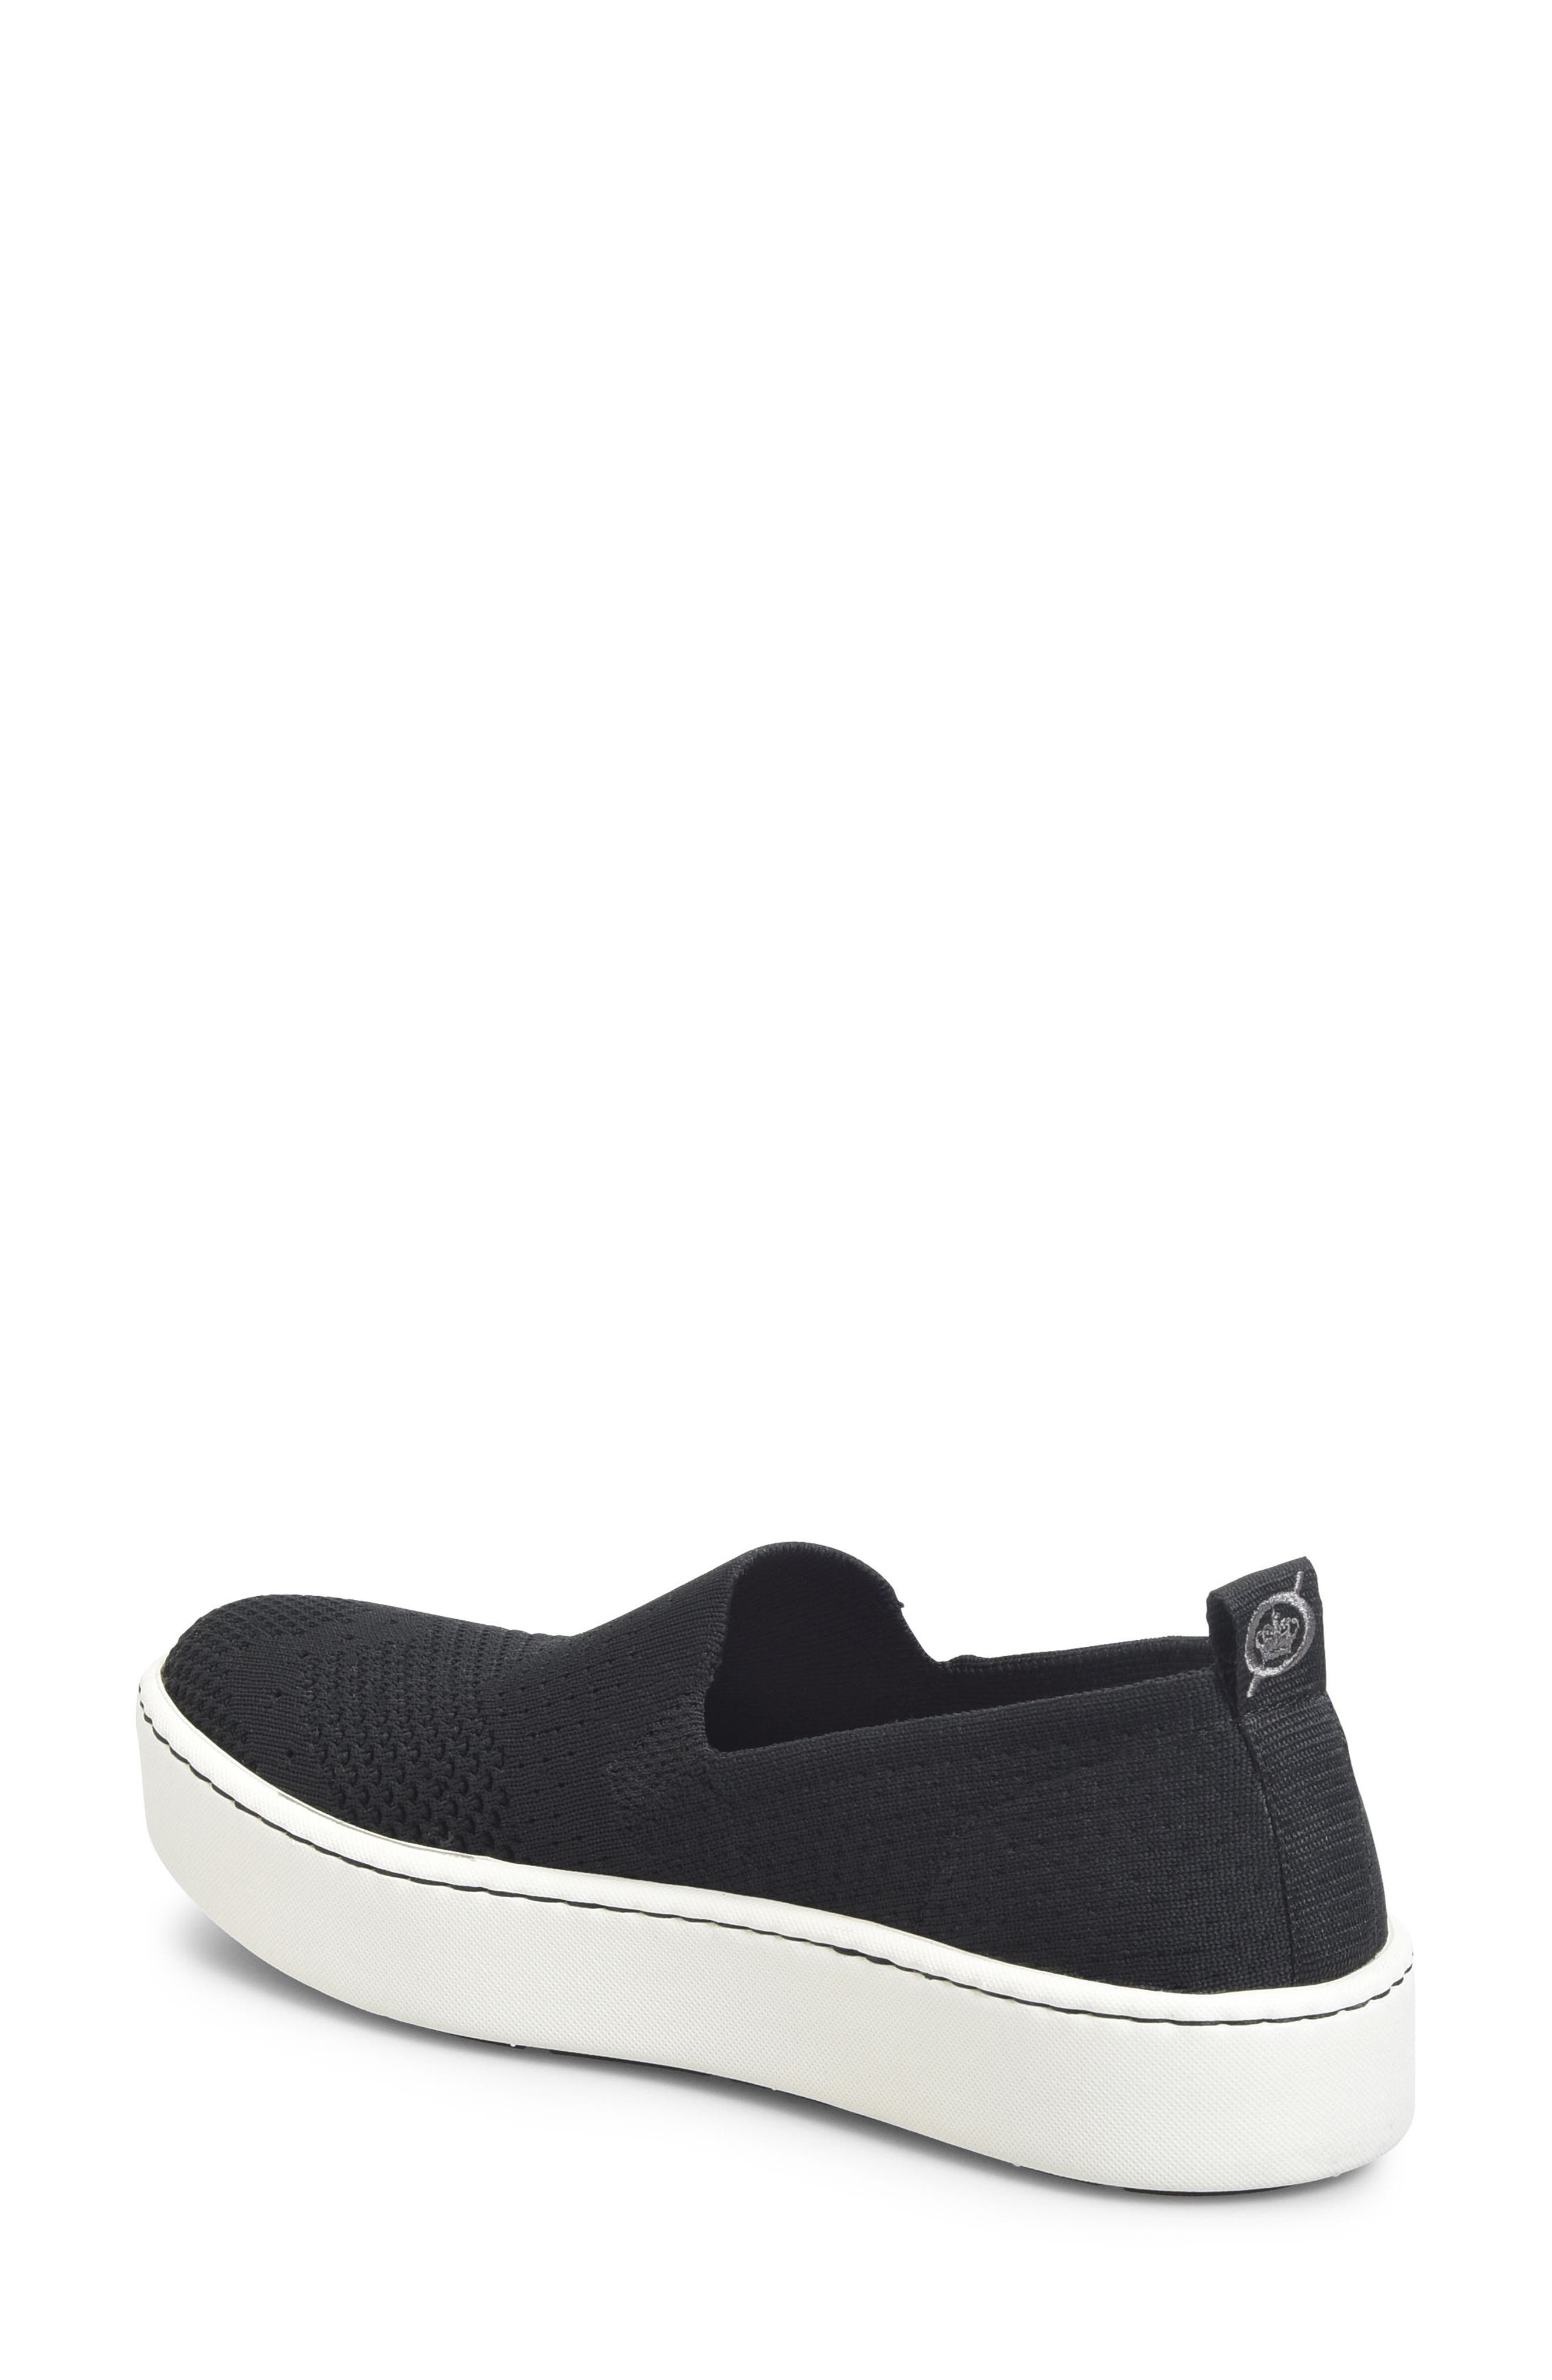 Sun Slip-On Sneaker,                             Alternate thumbnail 2, color,                             BLACK FABRIC